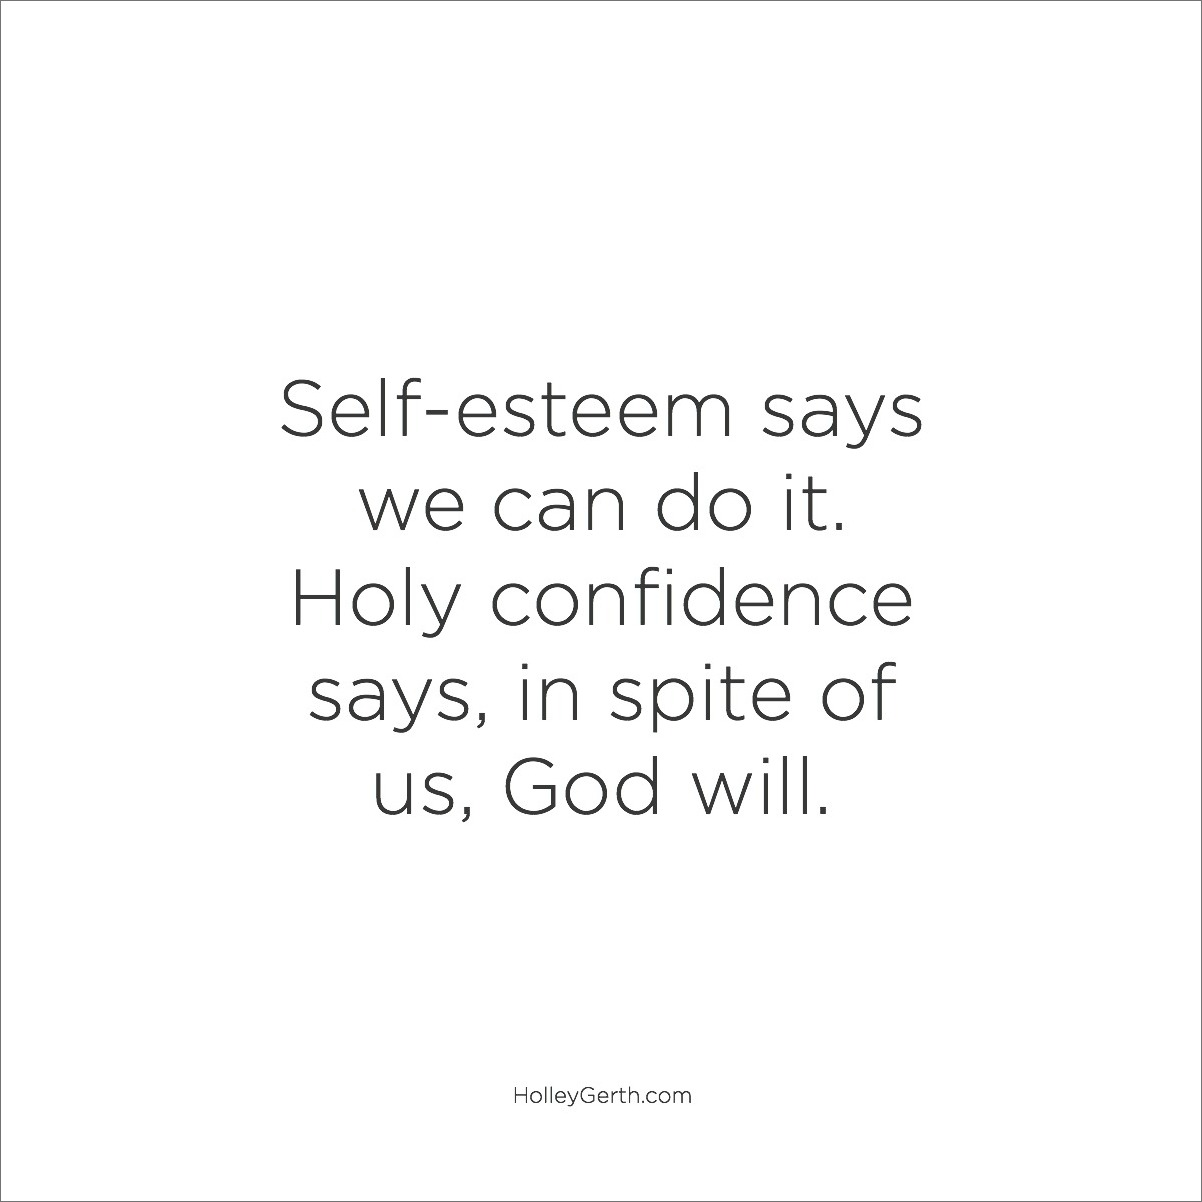 Self-esteem says we can do it. Holy confidence says, in spite of us, God will.